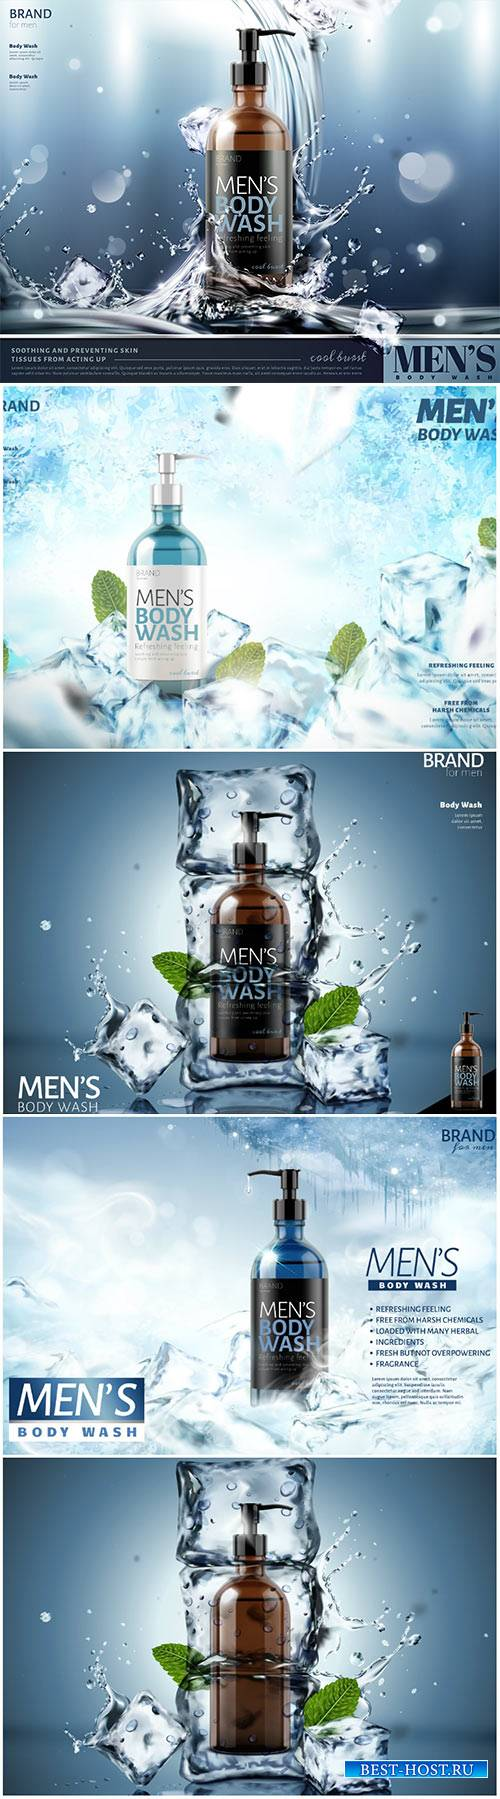 Men's body wash vector poster ads with splashing water and ice cubes in 3d ...